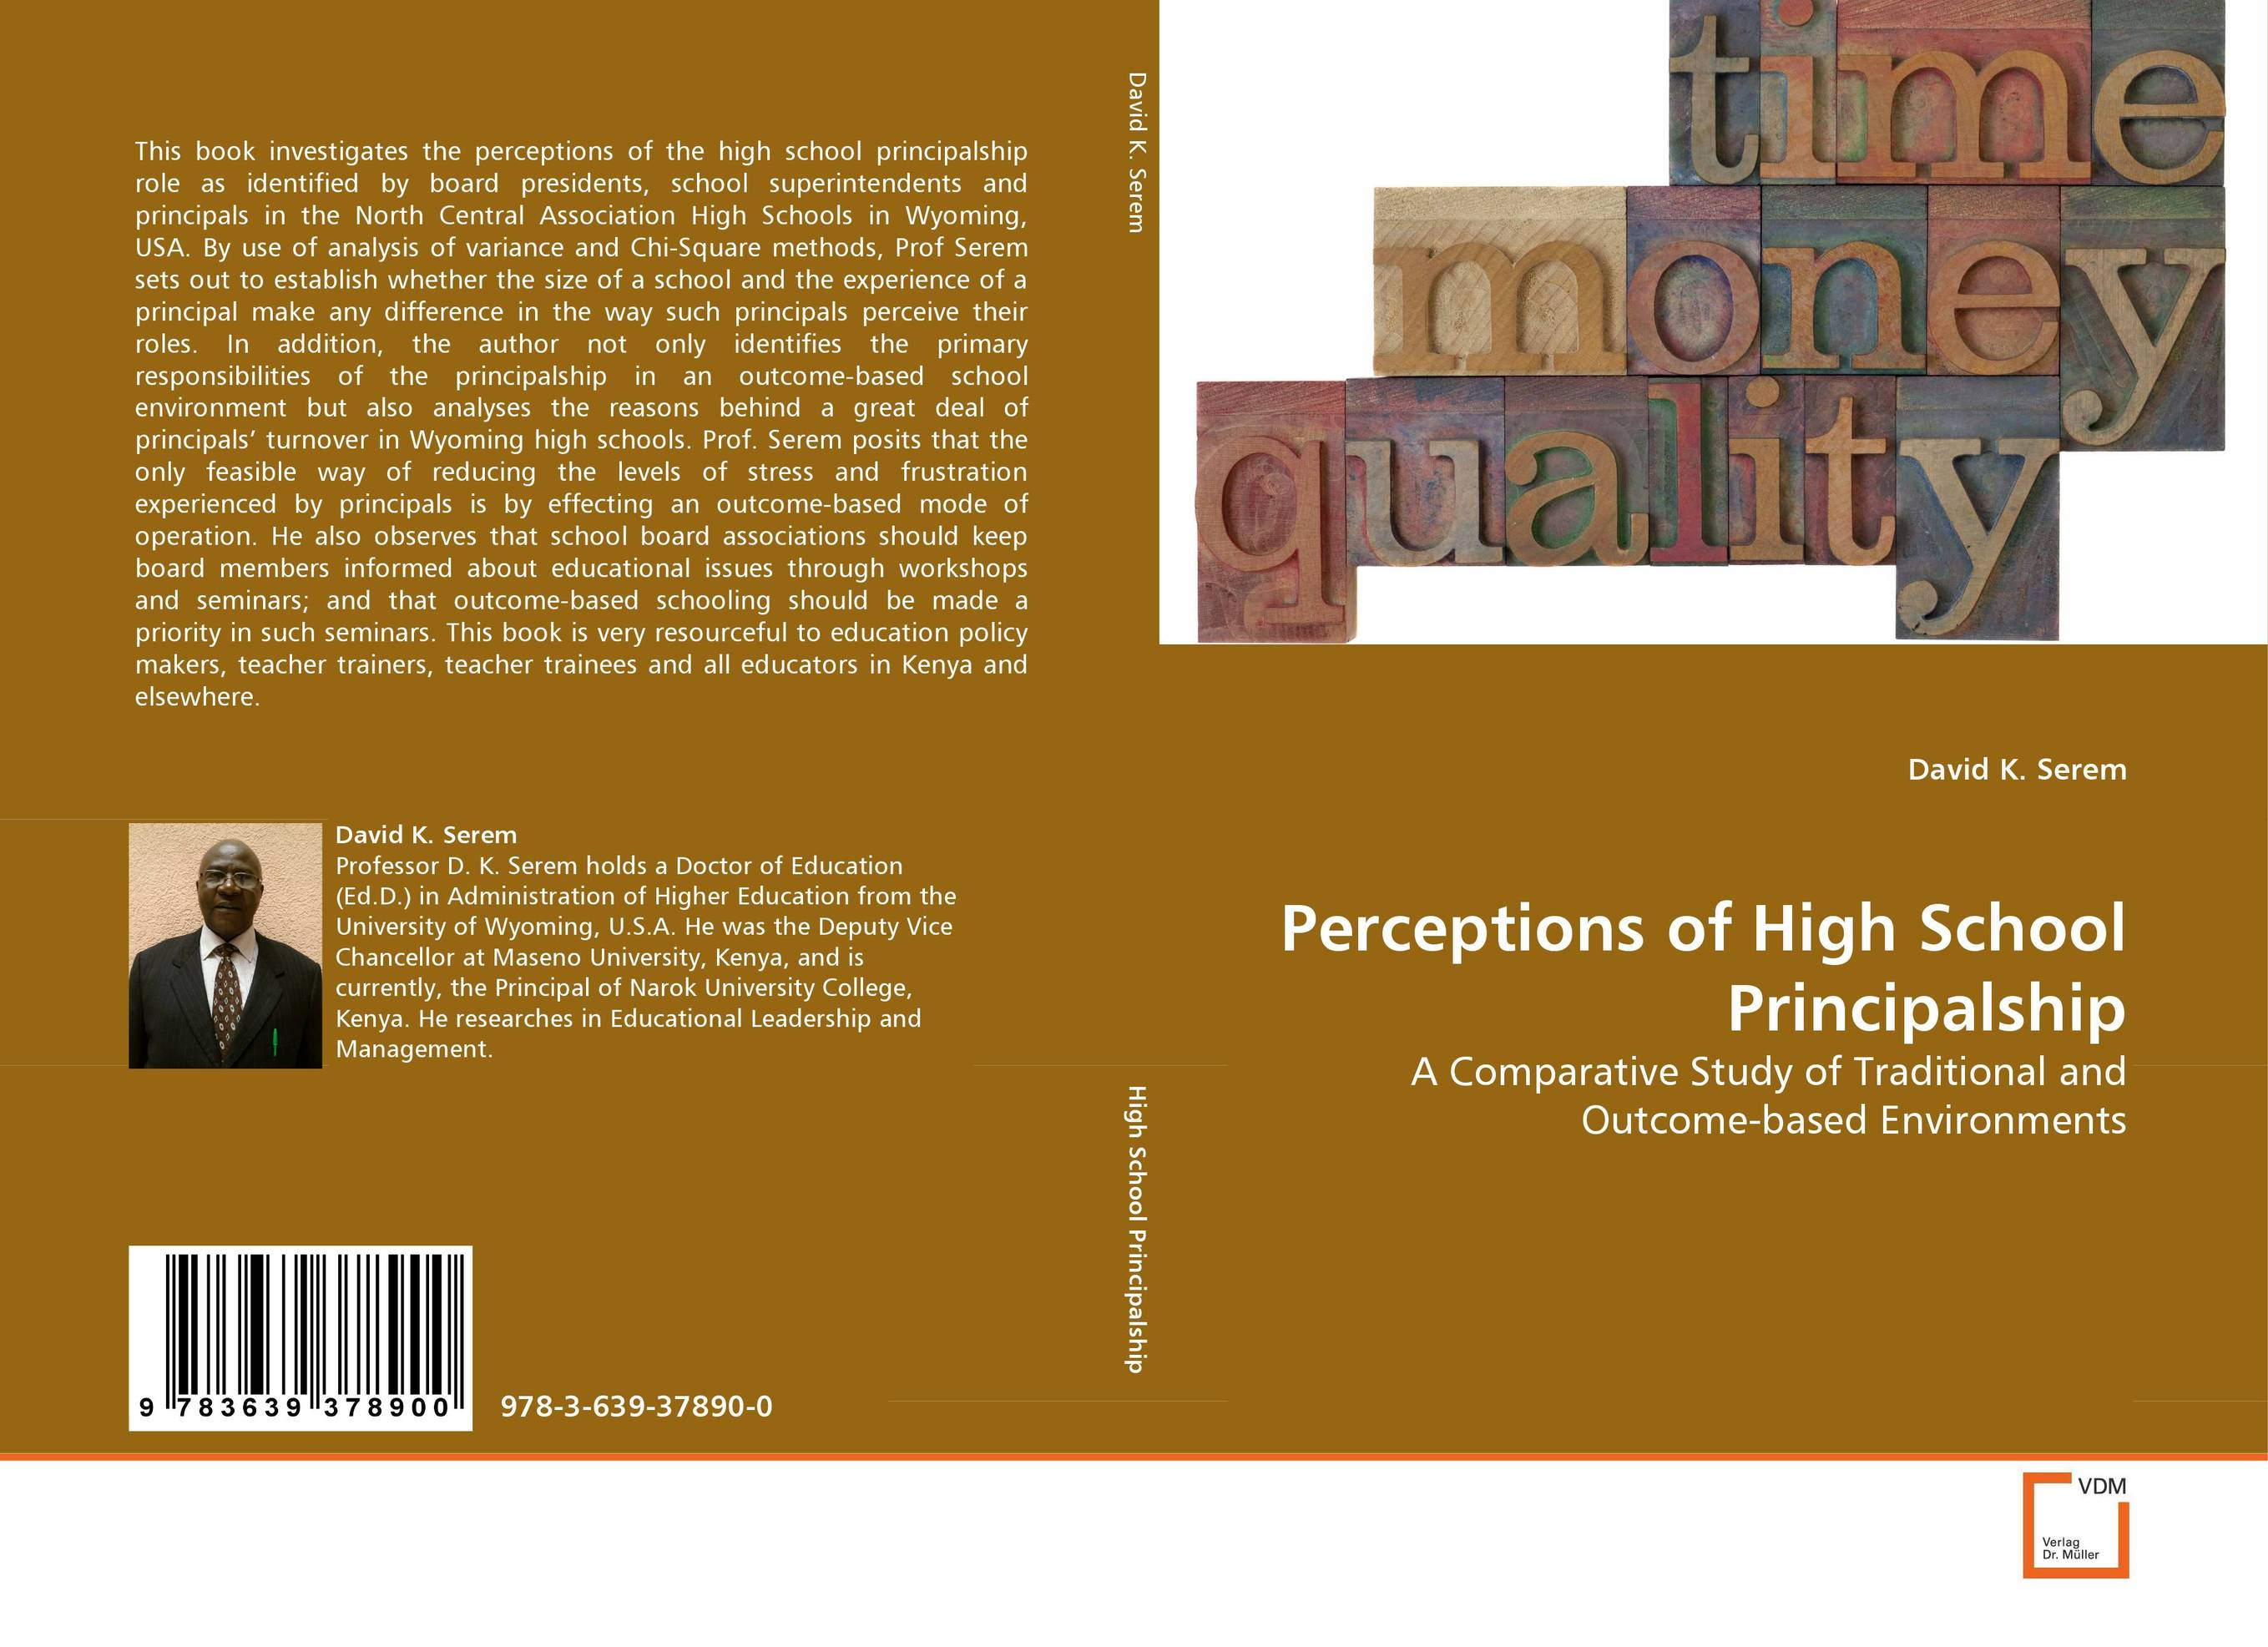 Perceptions of High School Principalship the assistant principalship as a career